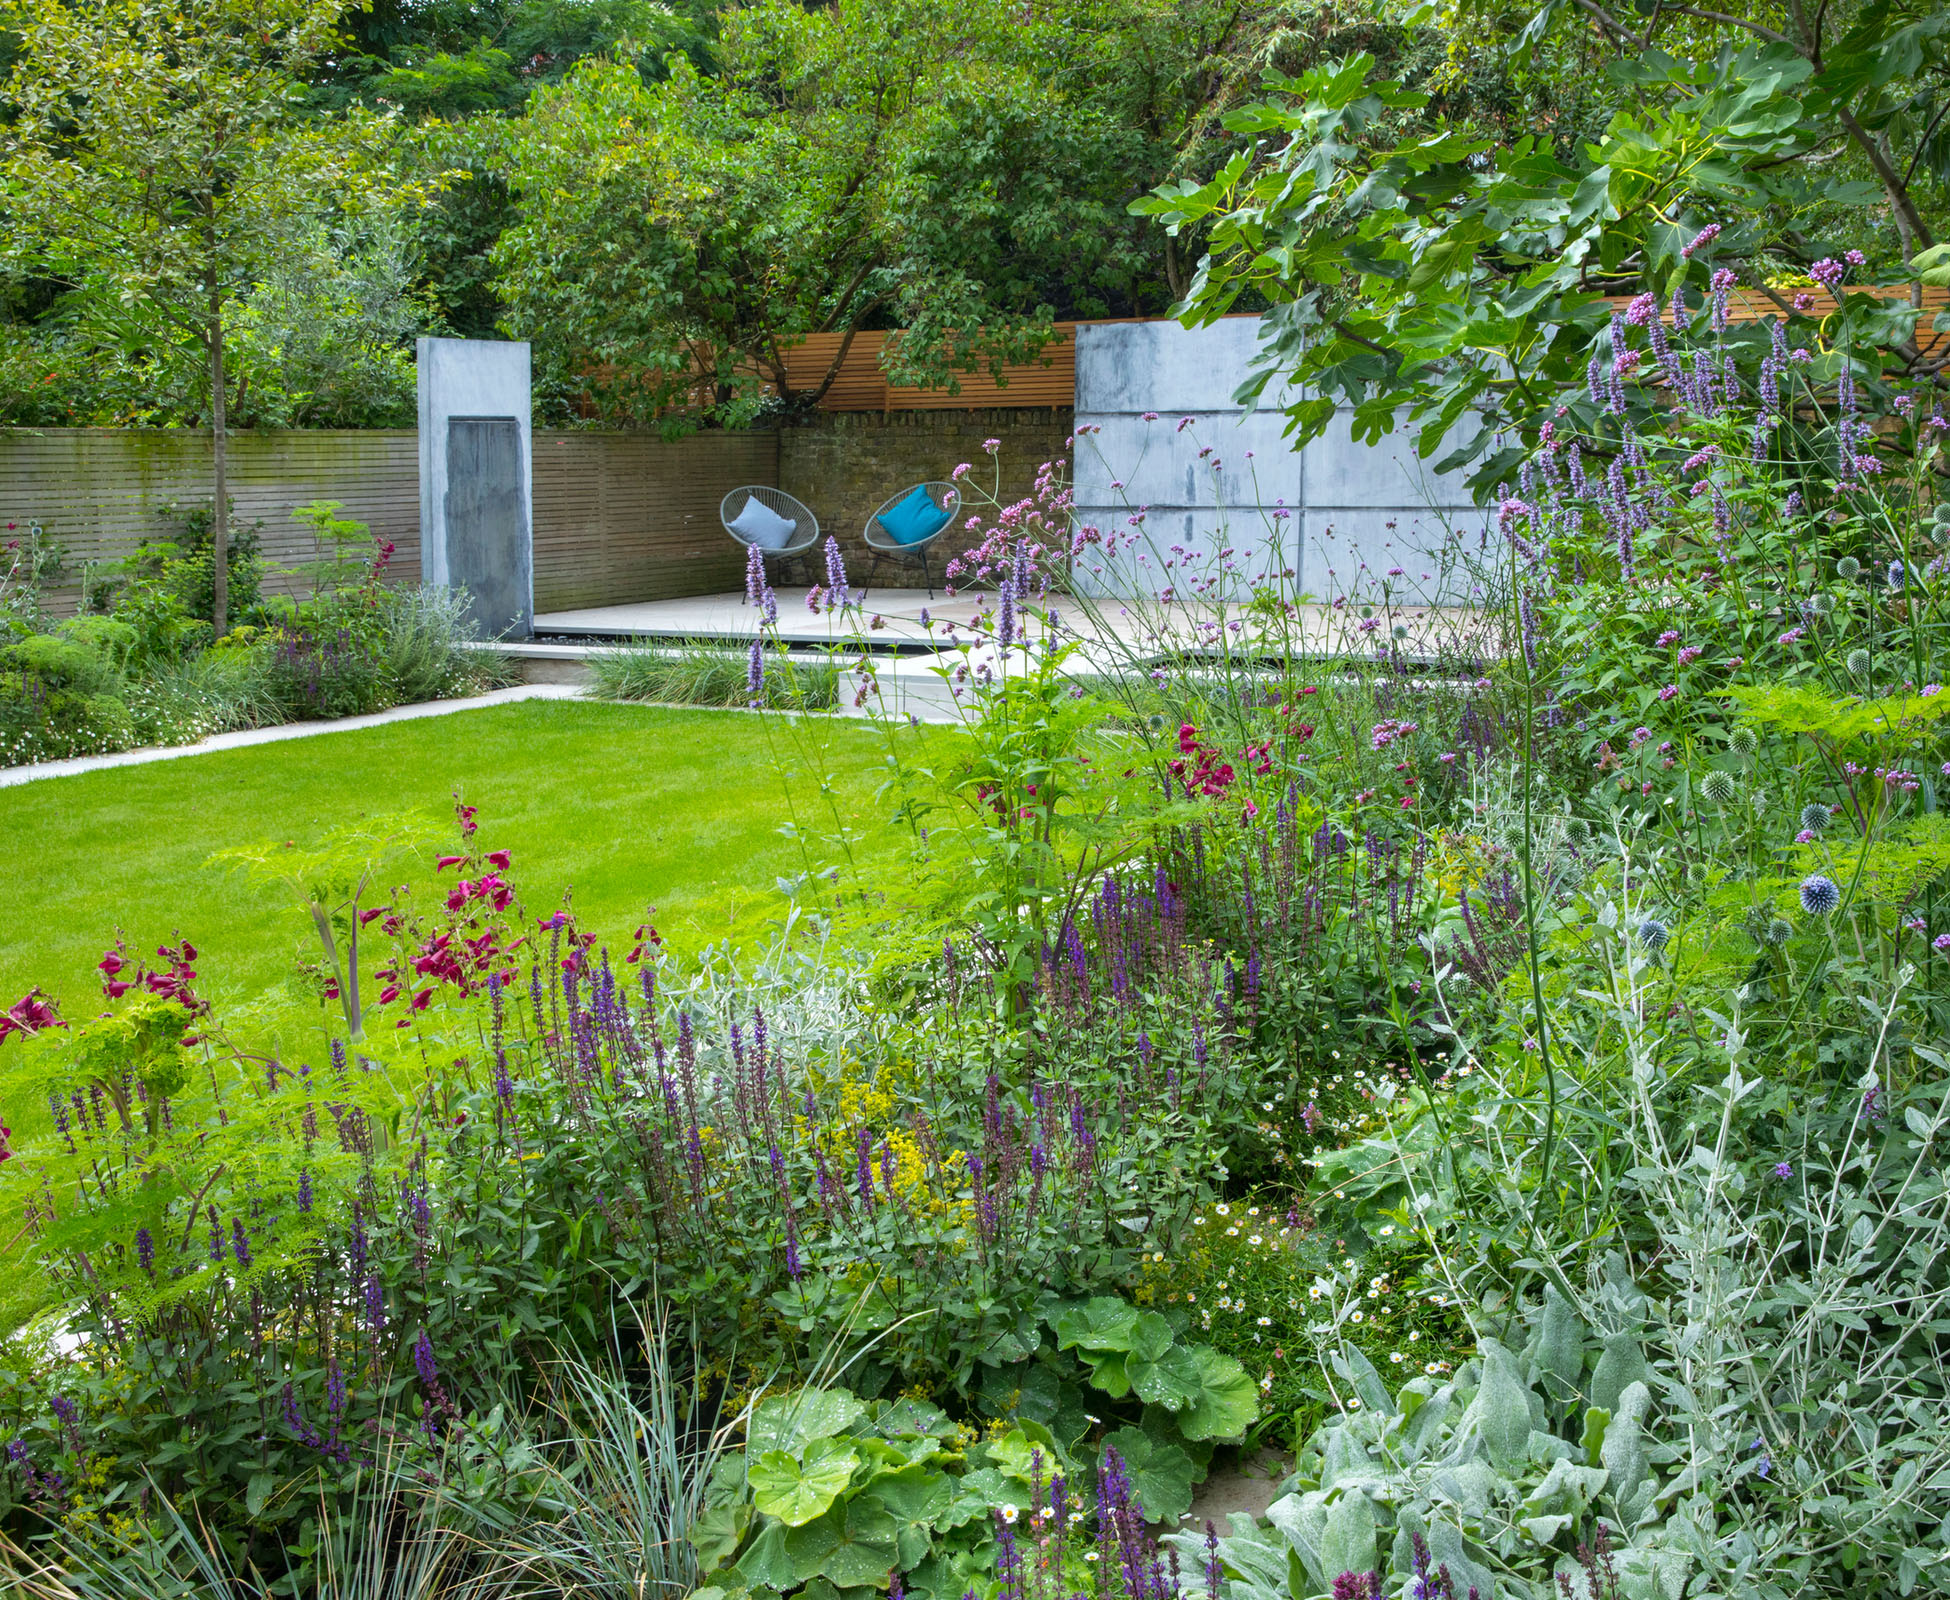 An existing fig tree is underplanted with a mix of herbaceous plants, in the tones of blue, grey, whites and purples. The seasonal flowering offers all year round interest in this Islington garden.